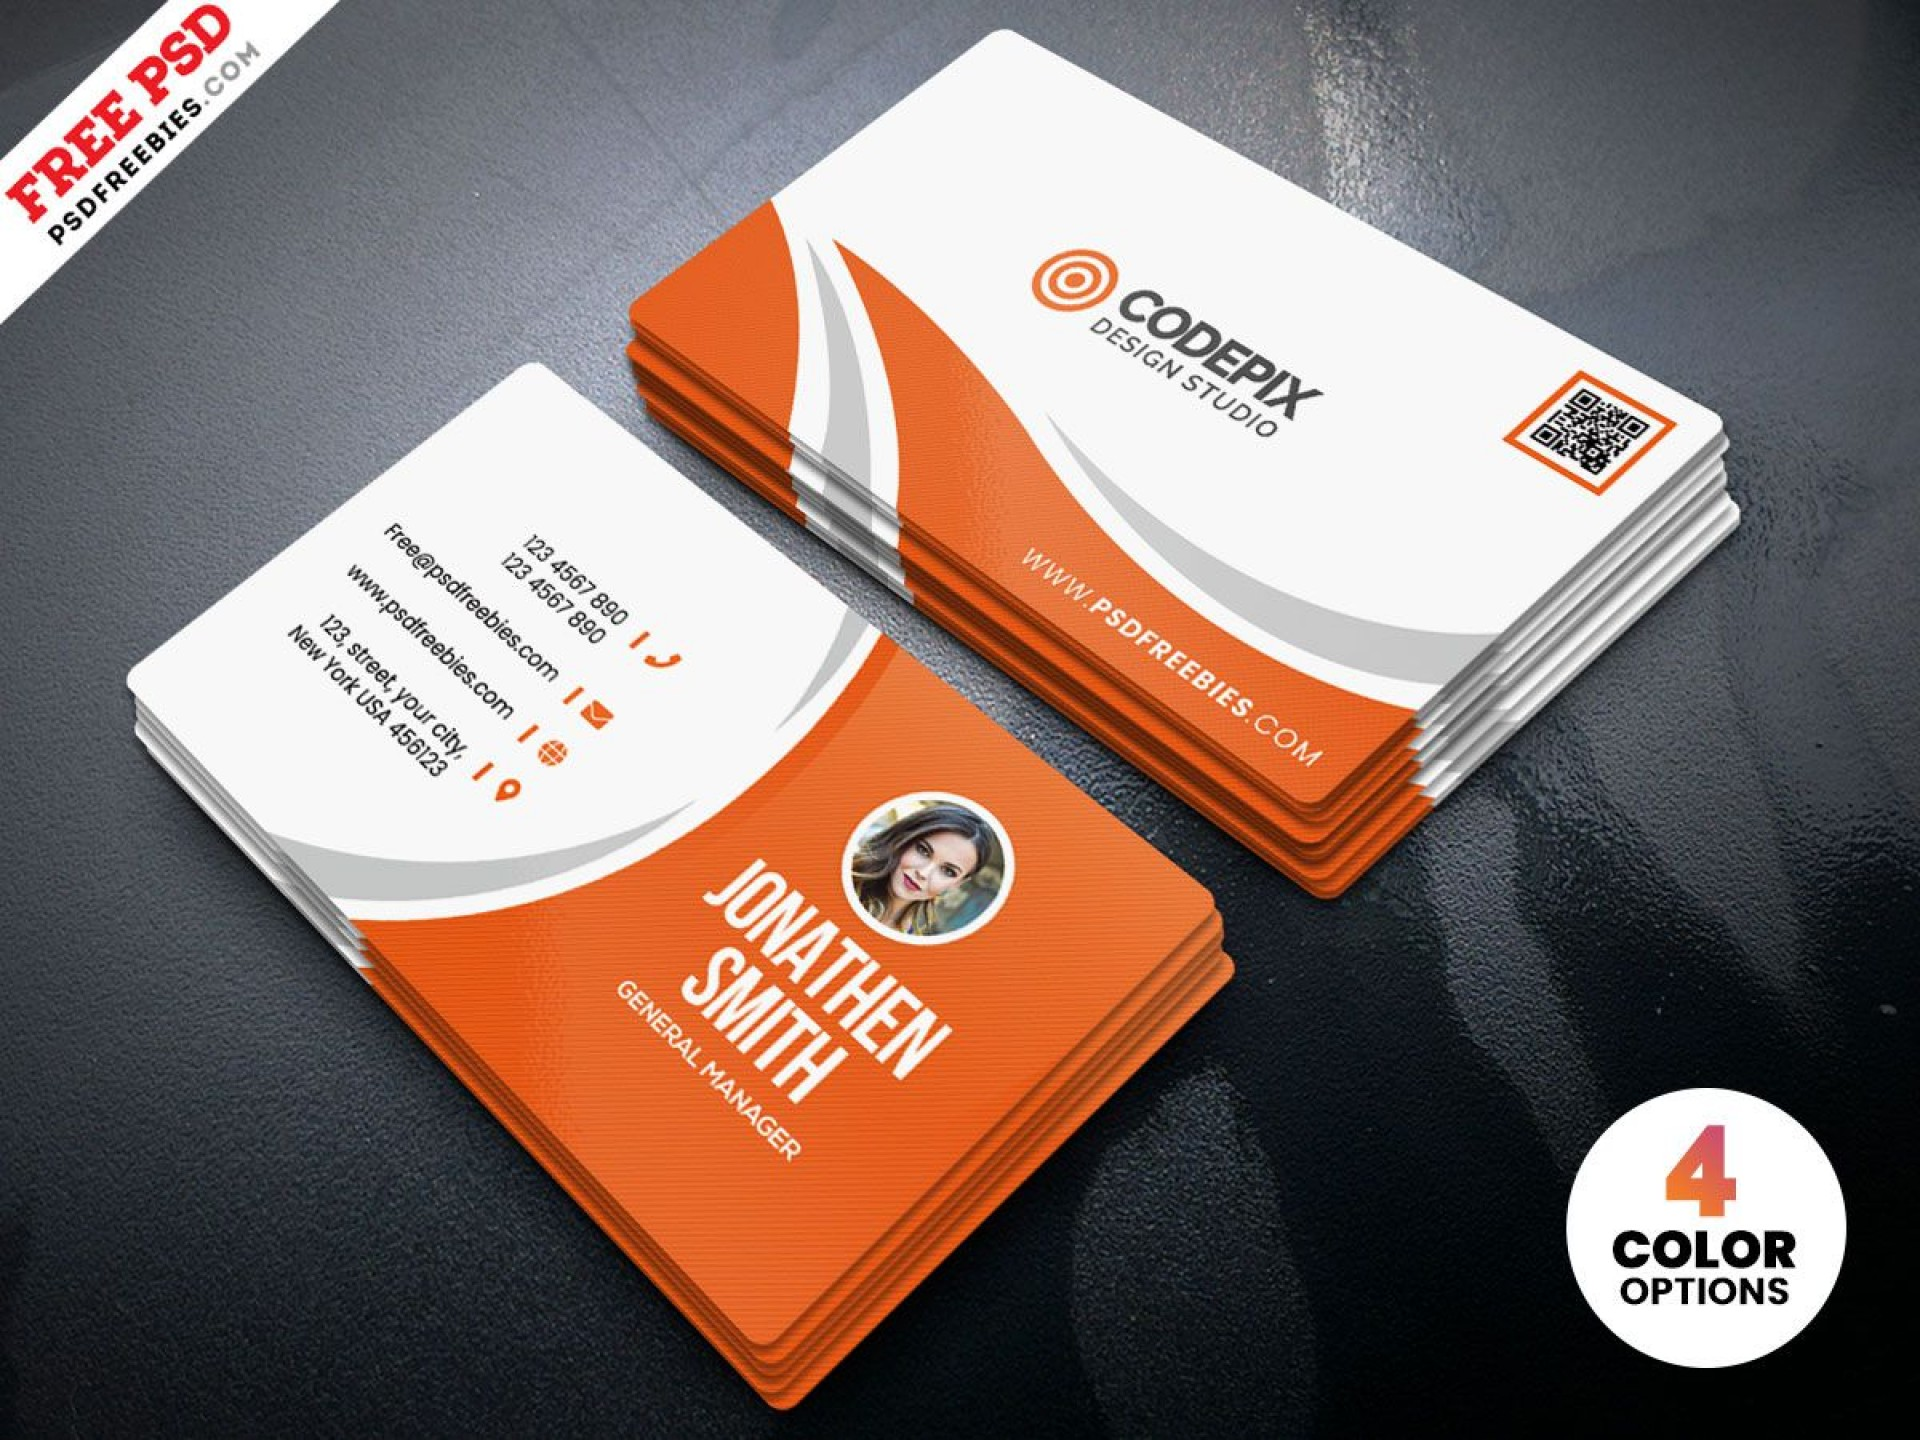 008 Unusual Simple Busines Card Template Psd Highest Quality  Design In Photoshop Minimalist Free1920